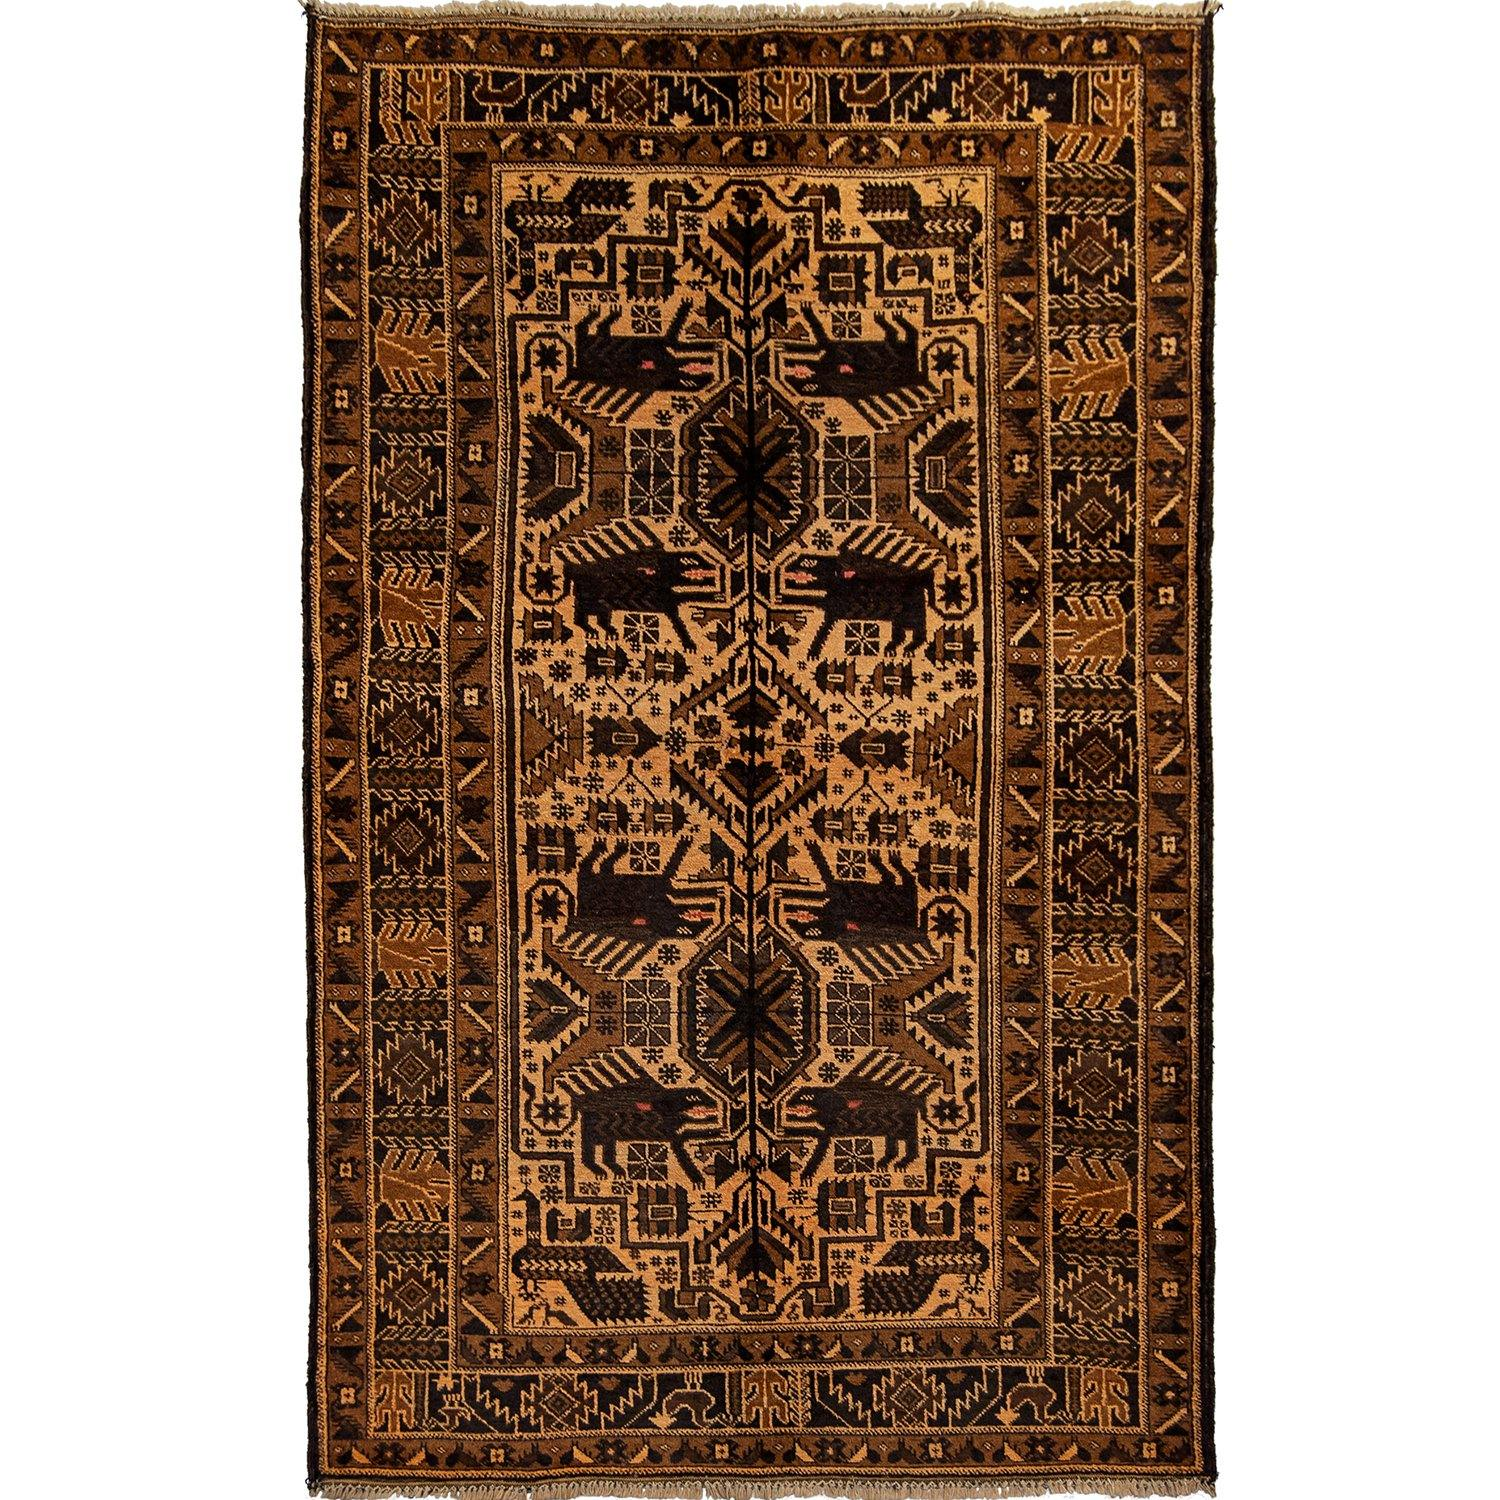 Vintage Hand-knotted Hand Spun Wool Baluchi Rug 115cm x 212cm Persian-Rug | House-of-Haghi | NewMarket | Auckland | NZ | Handmade Persian Rugs | Hand Knotted Persian Rugs